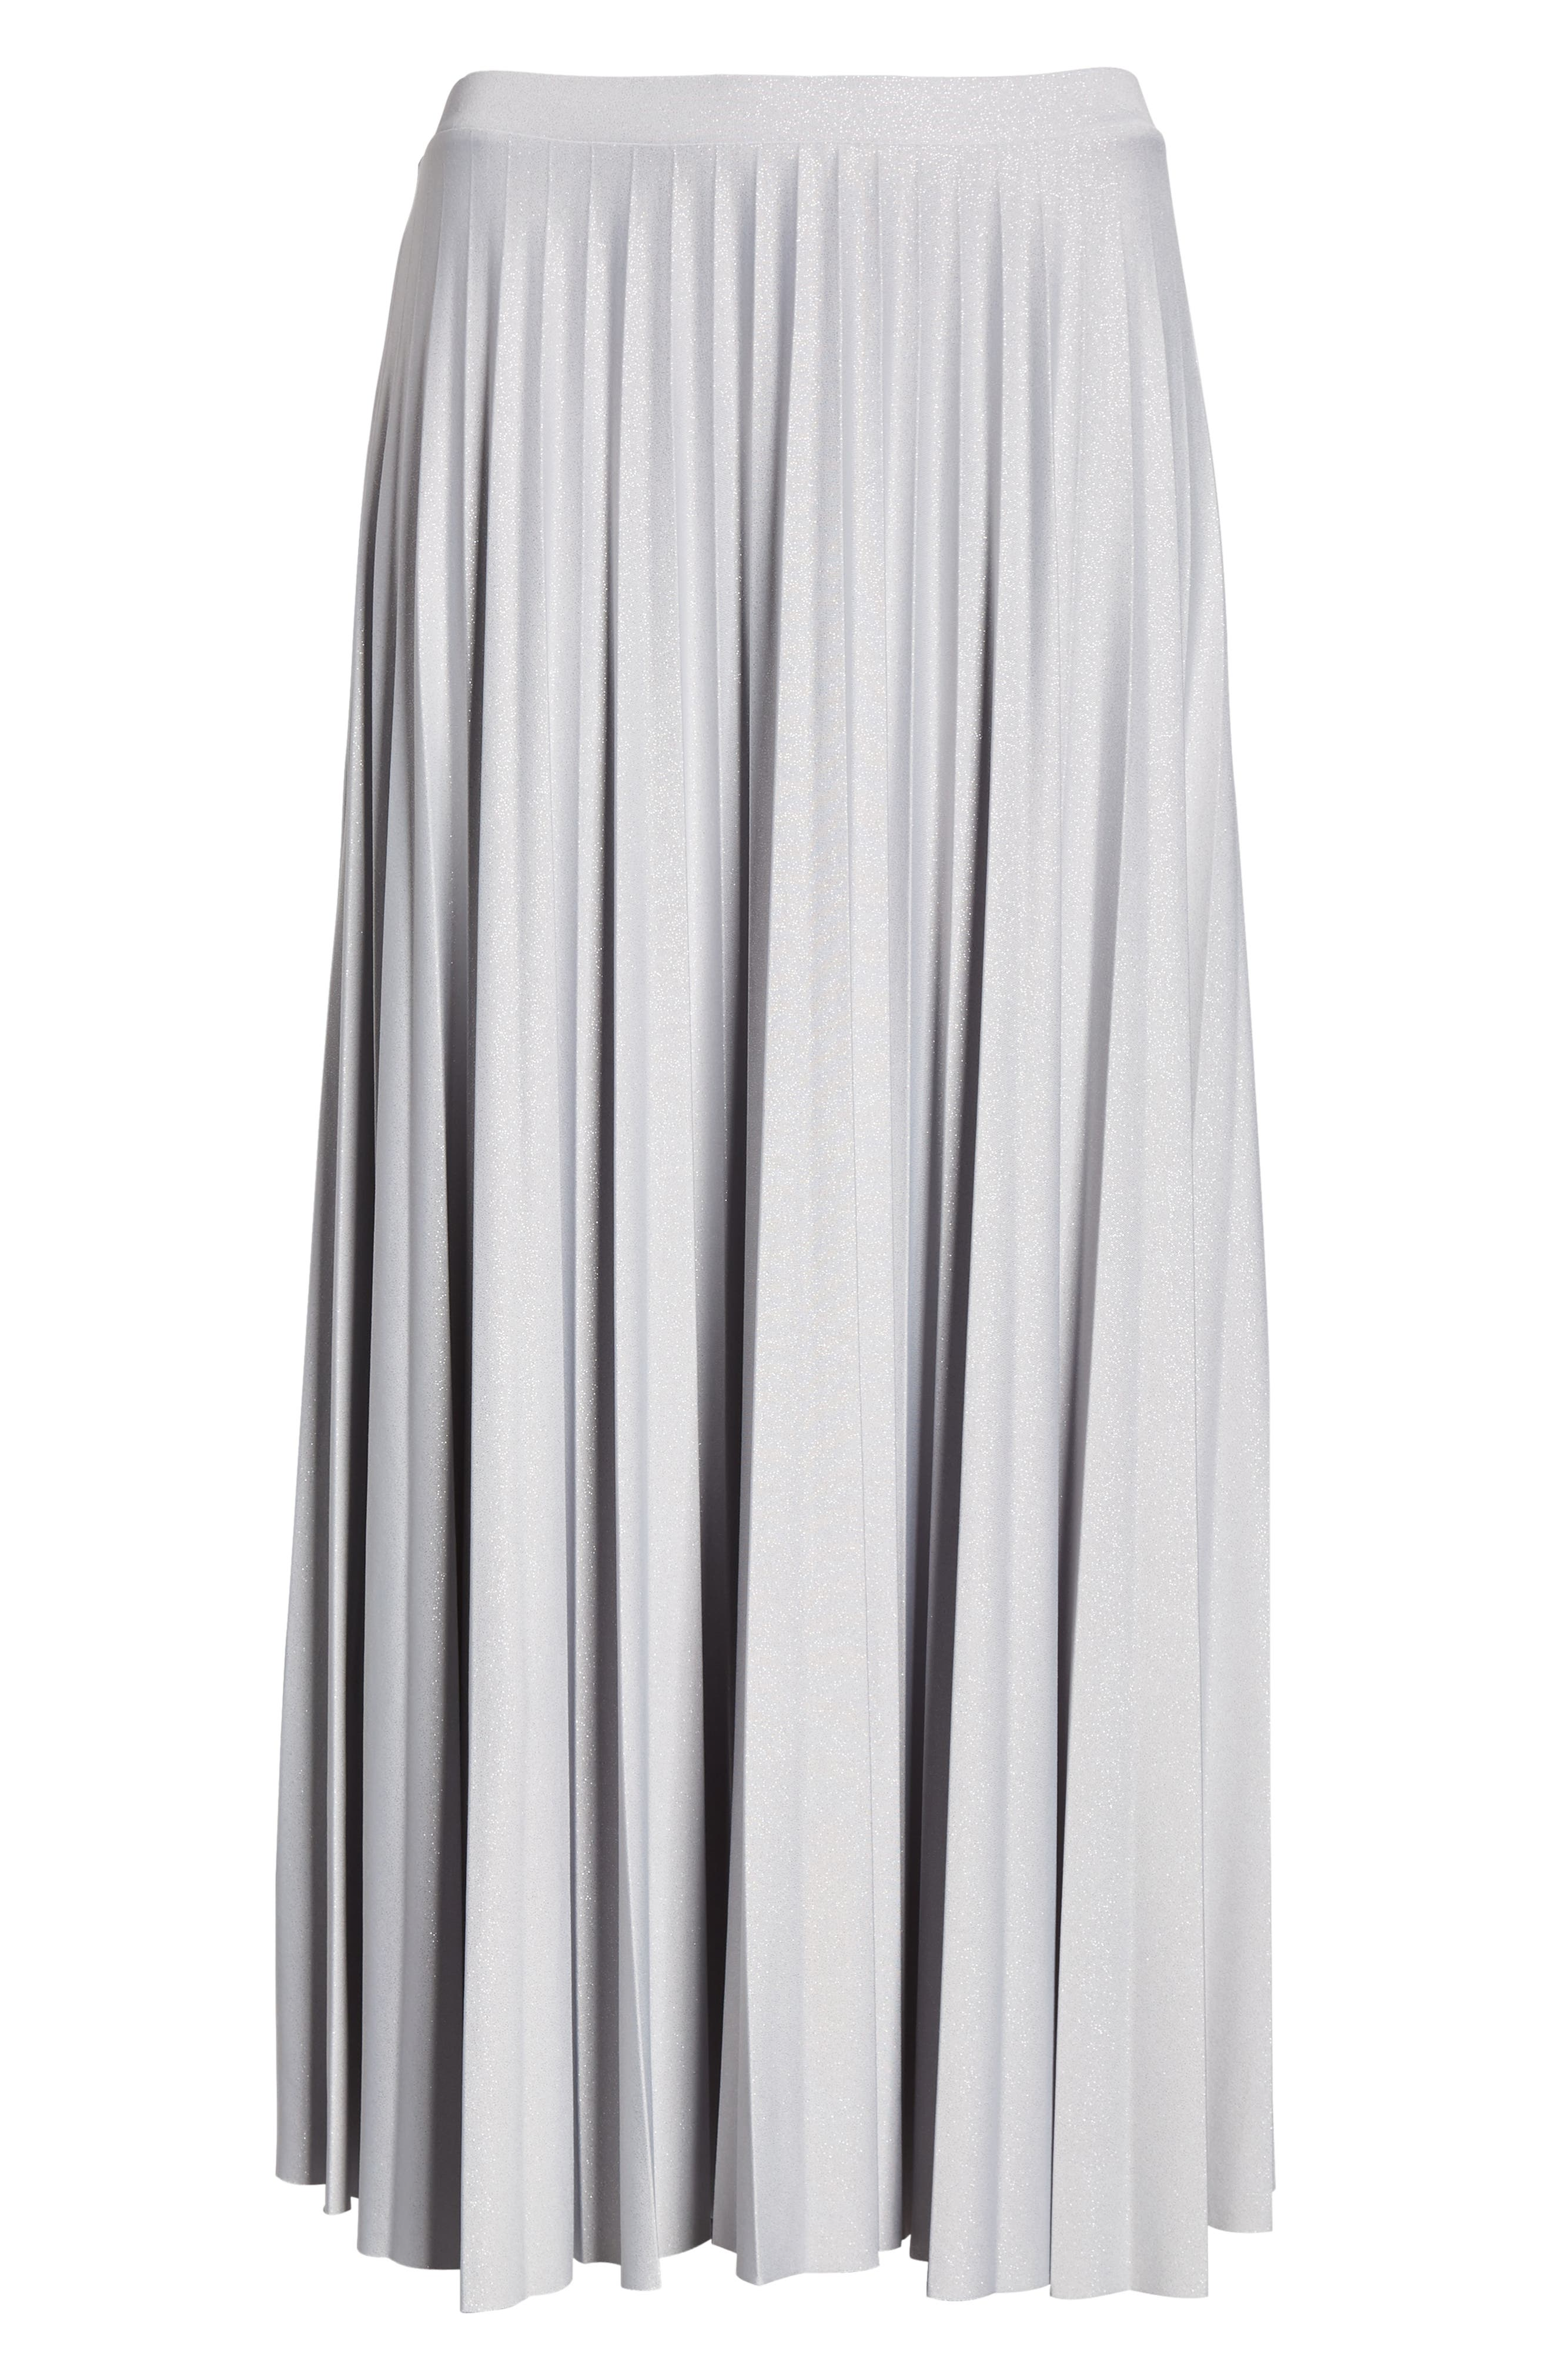 Metallic Pleat Midi Skirt,                             Alternate thumbnail 6, color,                             GREY- SILVER FOIL